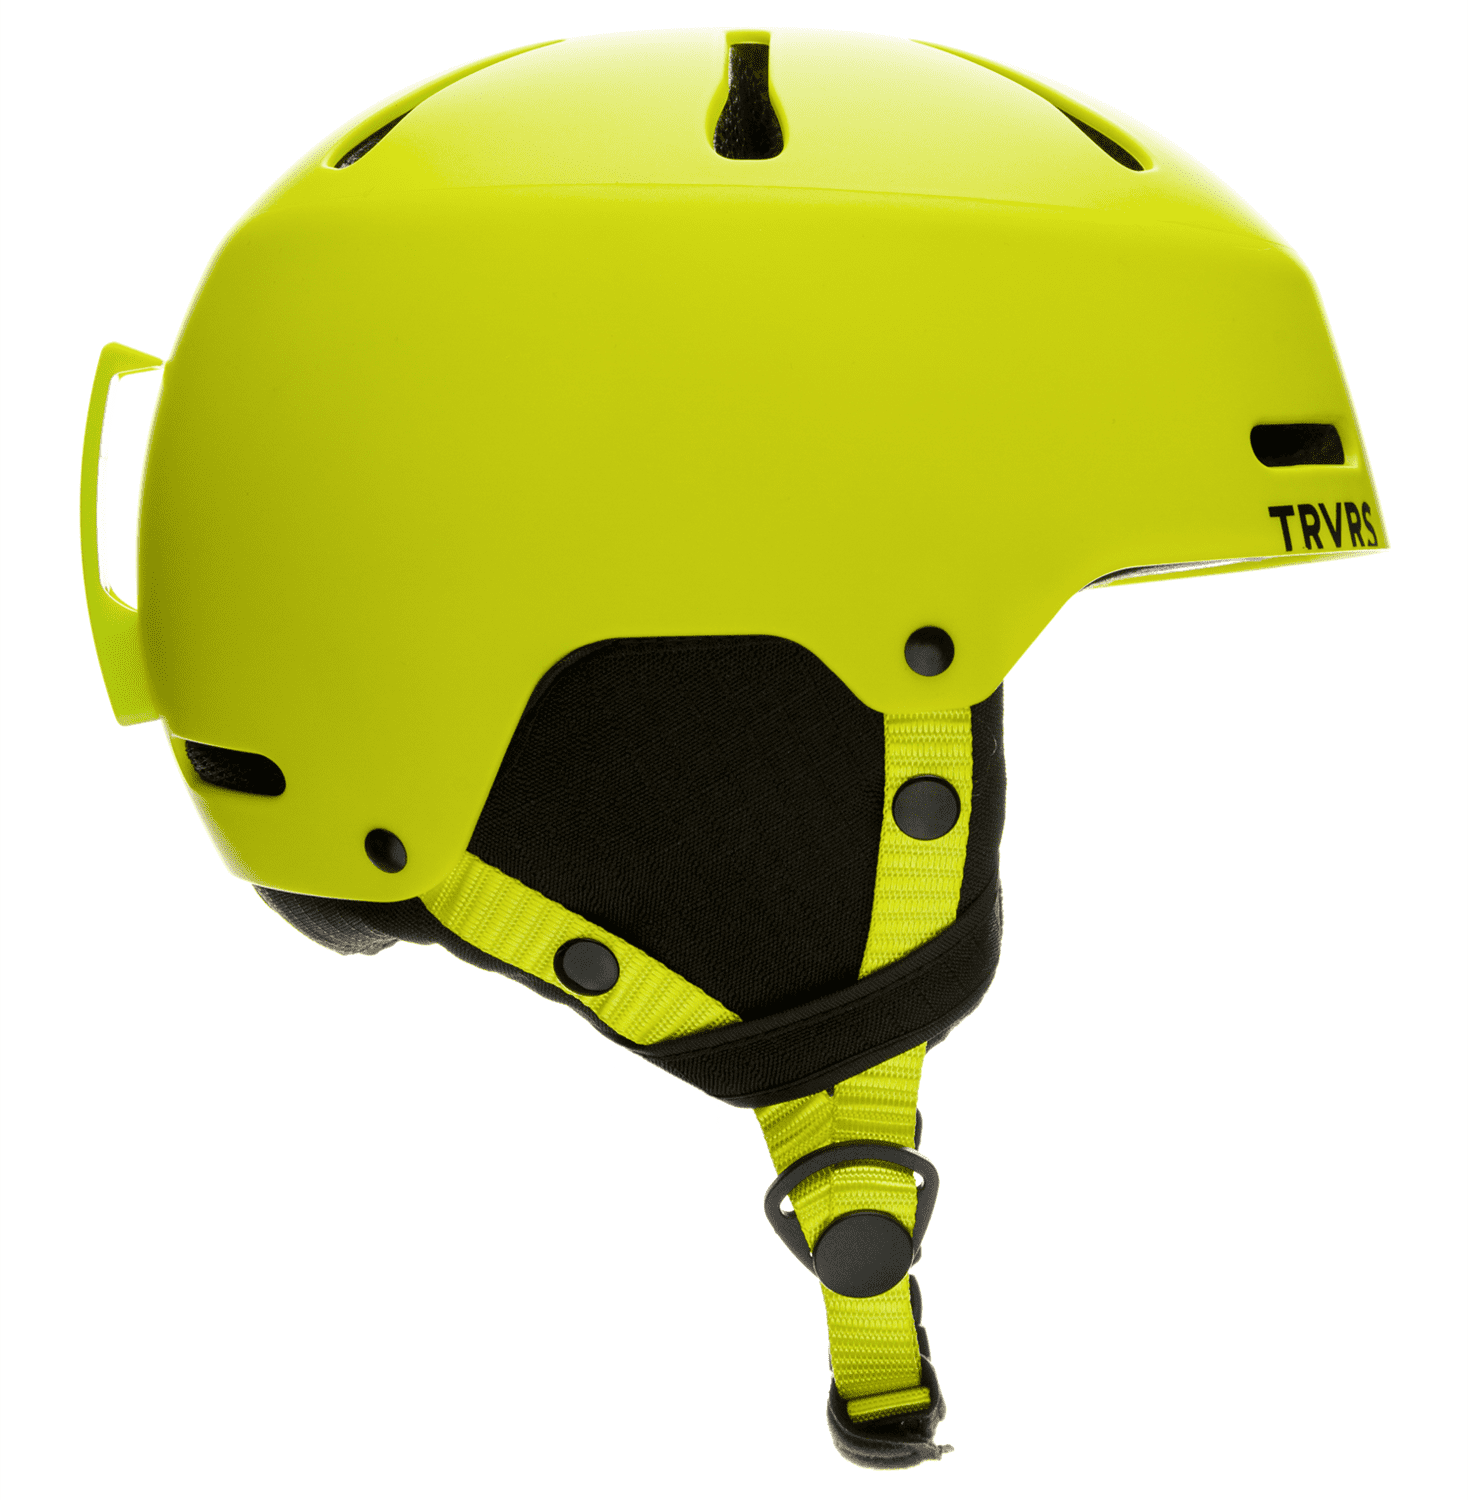 Traverse Sparrow Youth Ski, Snowboard, and Snowmobile Helmet, Matte Lime, Small (52-55cm) by Traverse